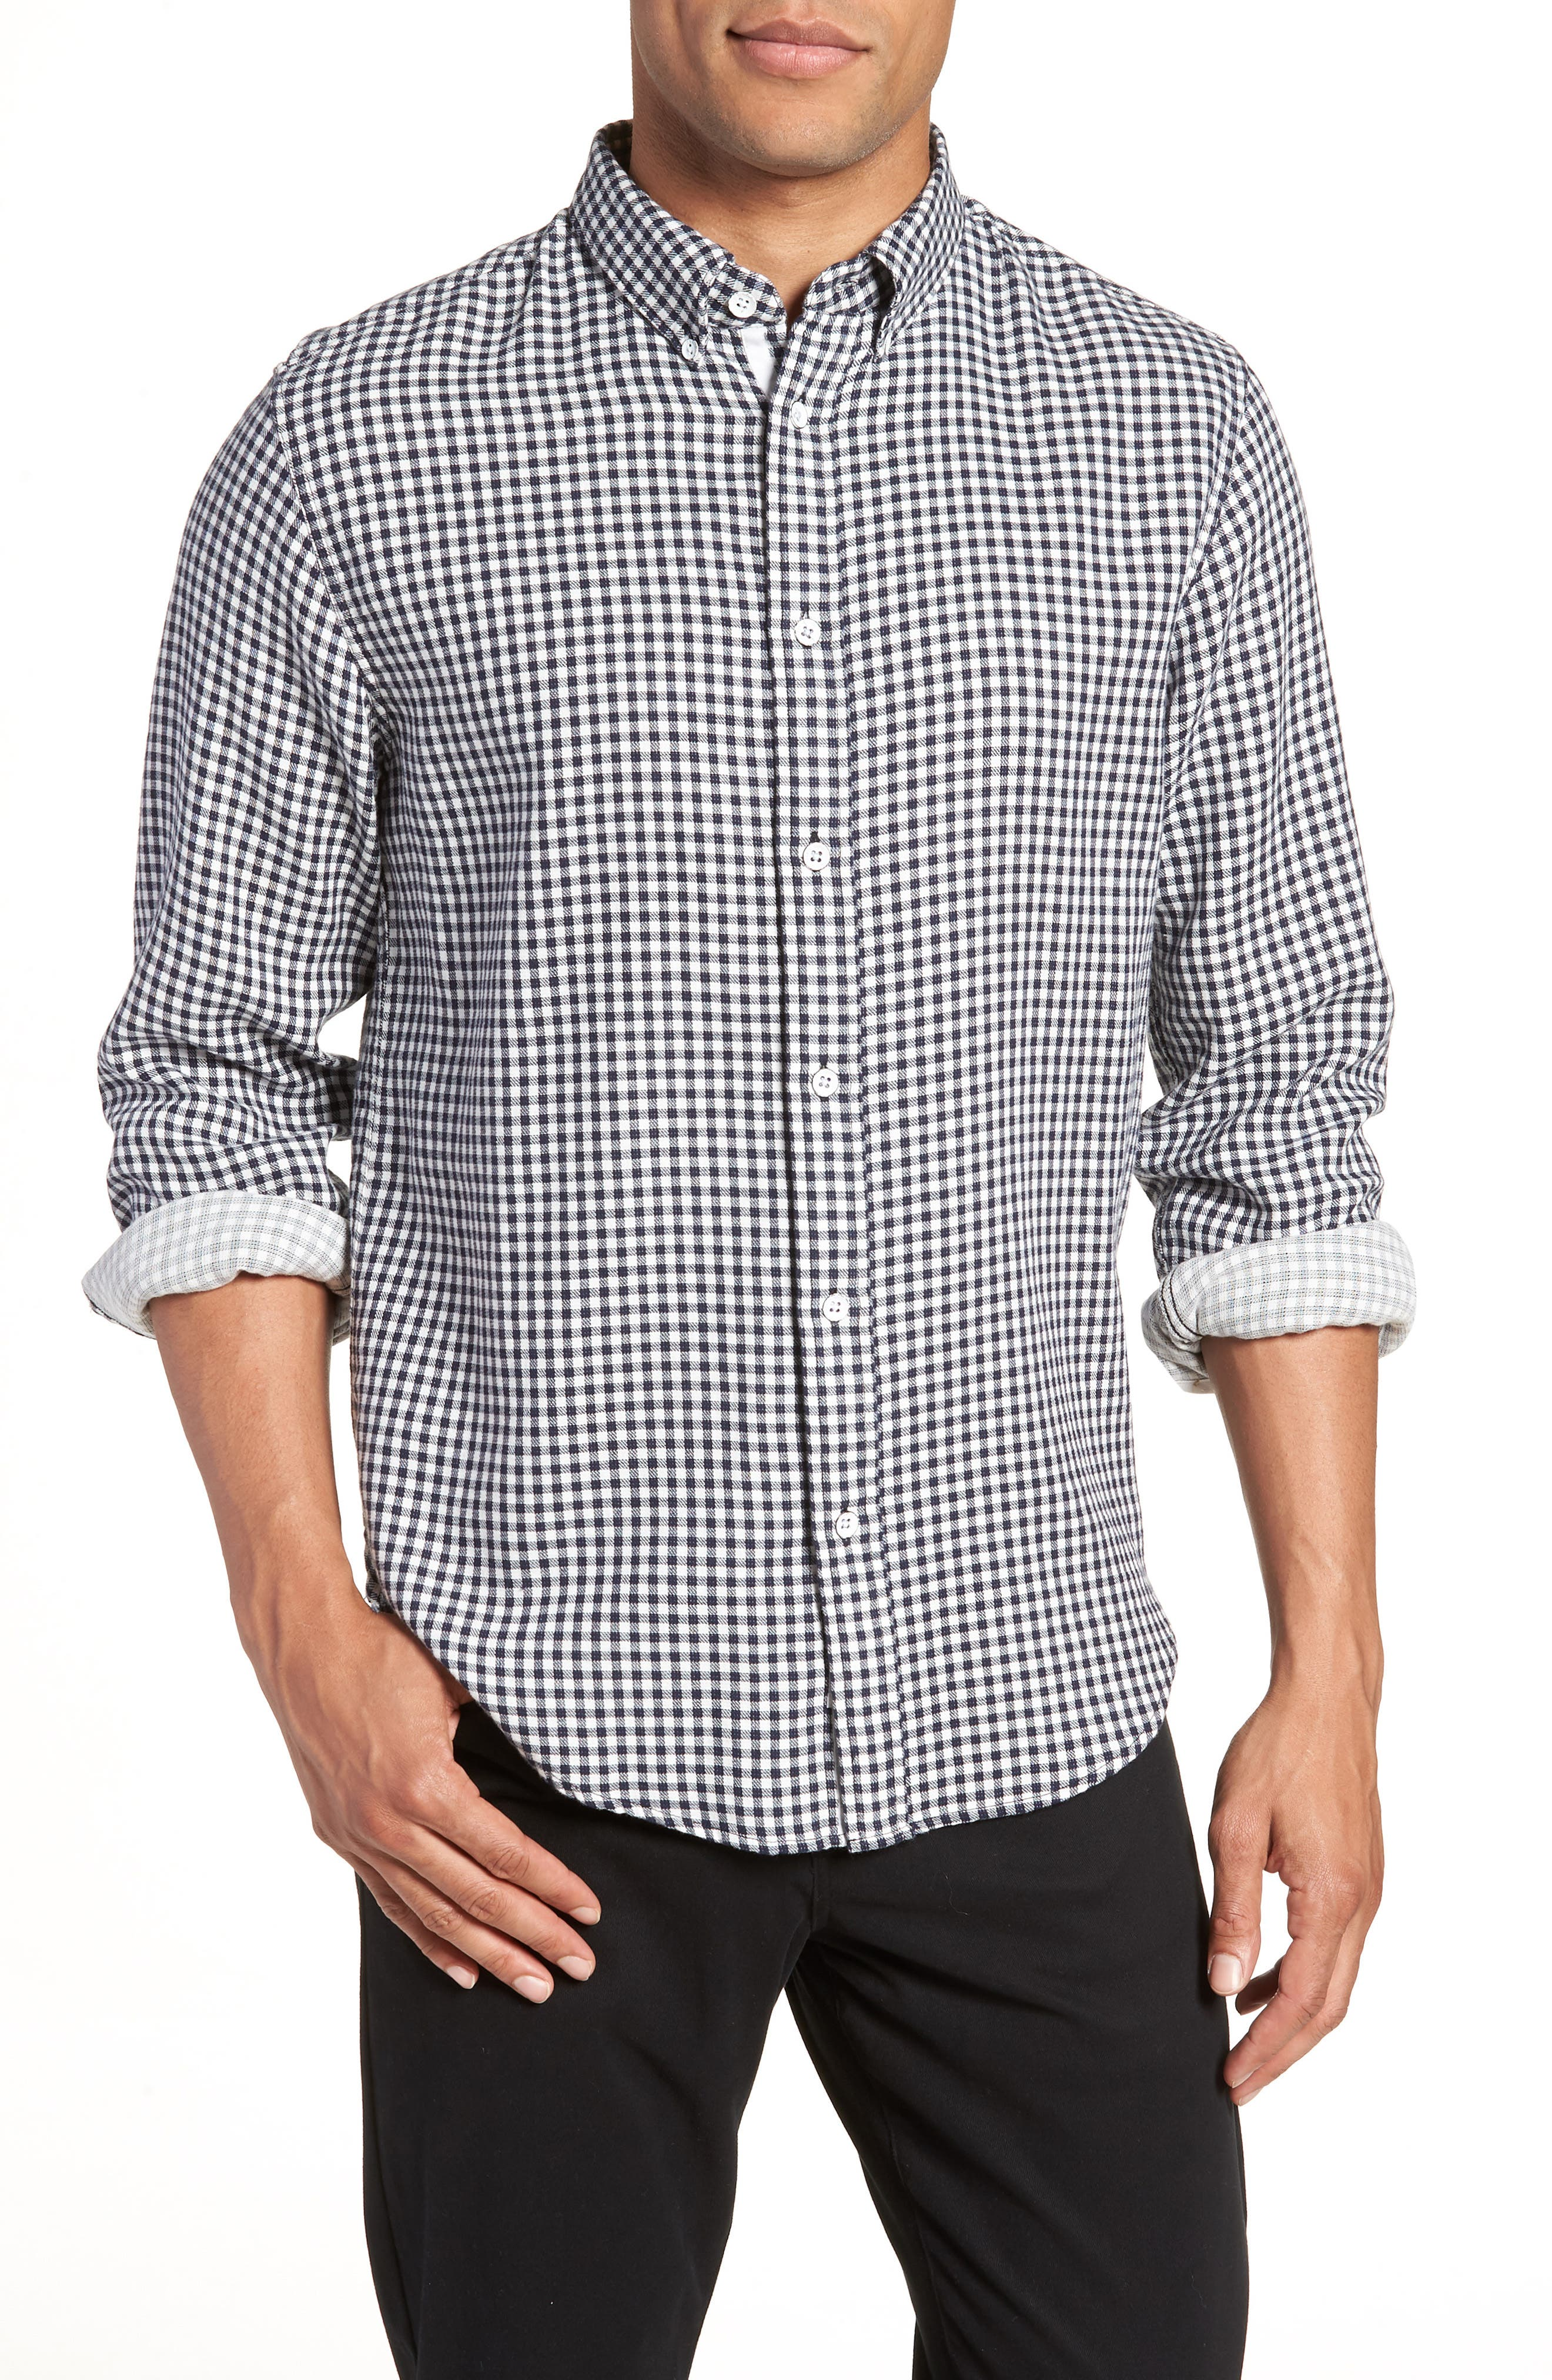 Fit 2 Tomlin Check Sport Shirt,                         Main,                         color, NAVY GINGHAM